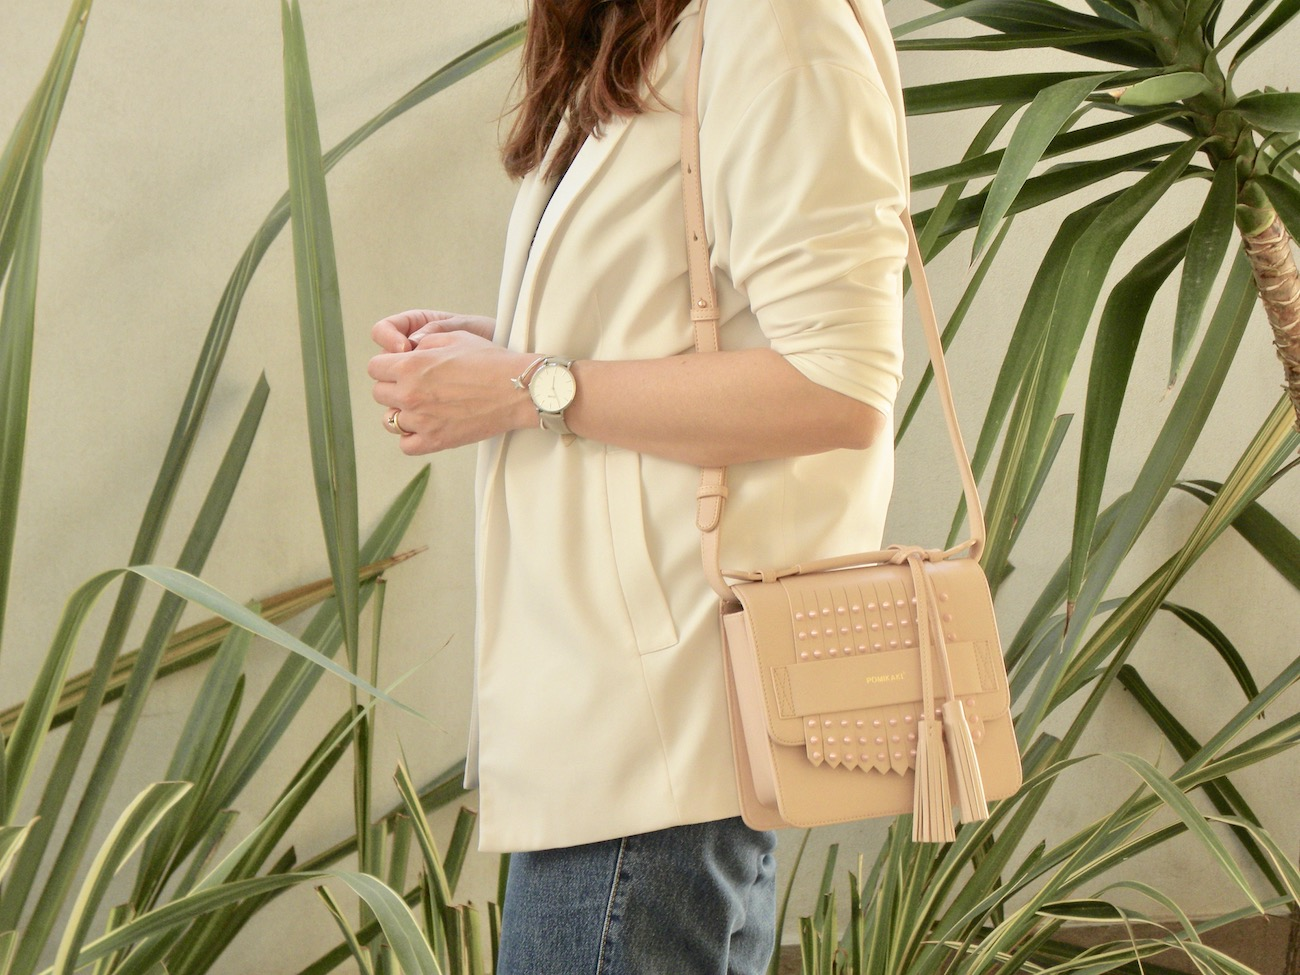 spring bags trend 2018